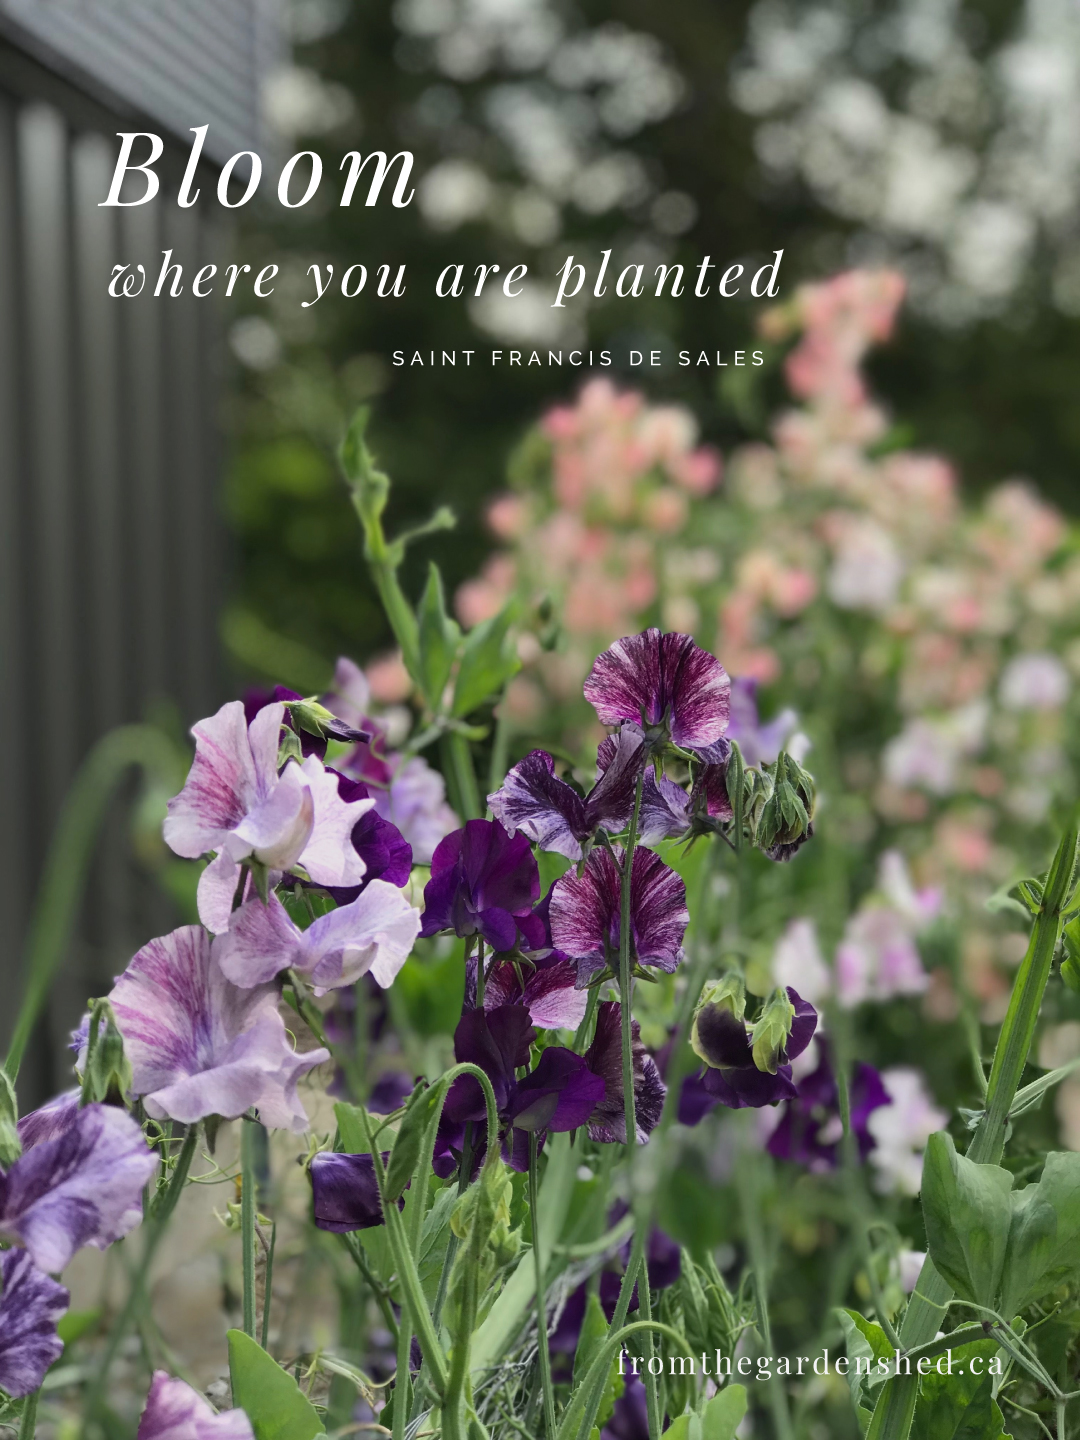 Bloom where you are planted quote image